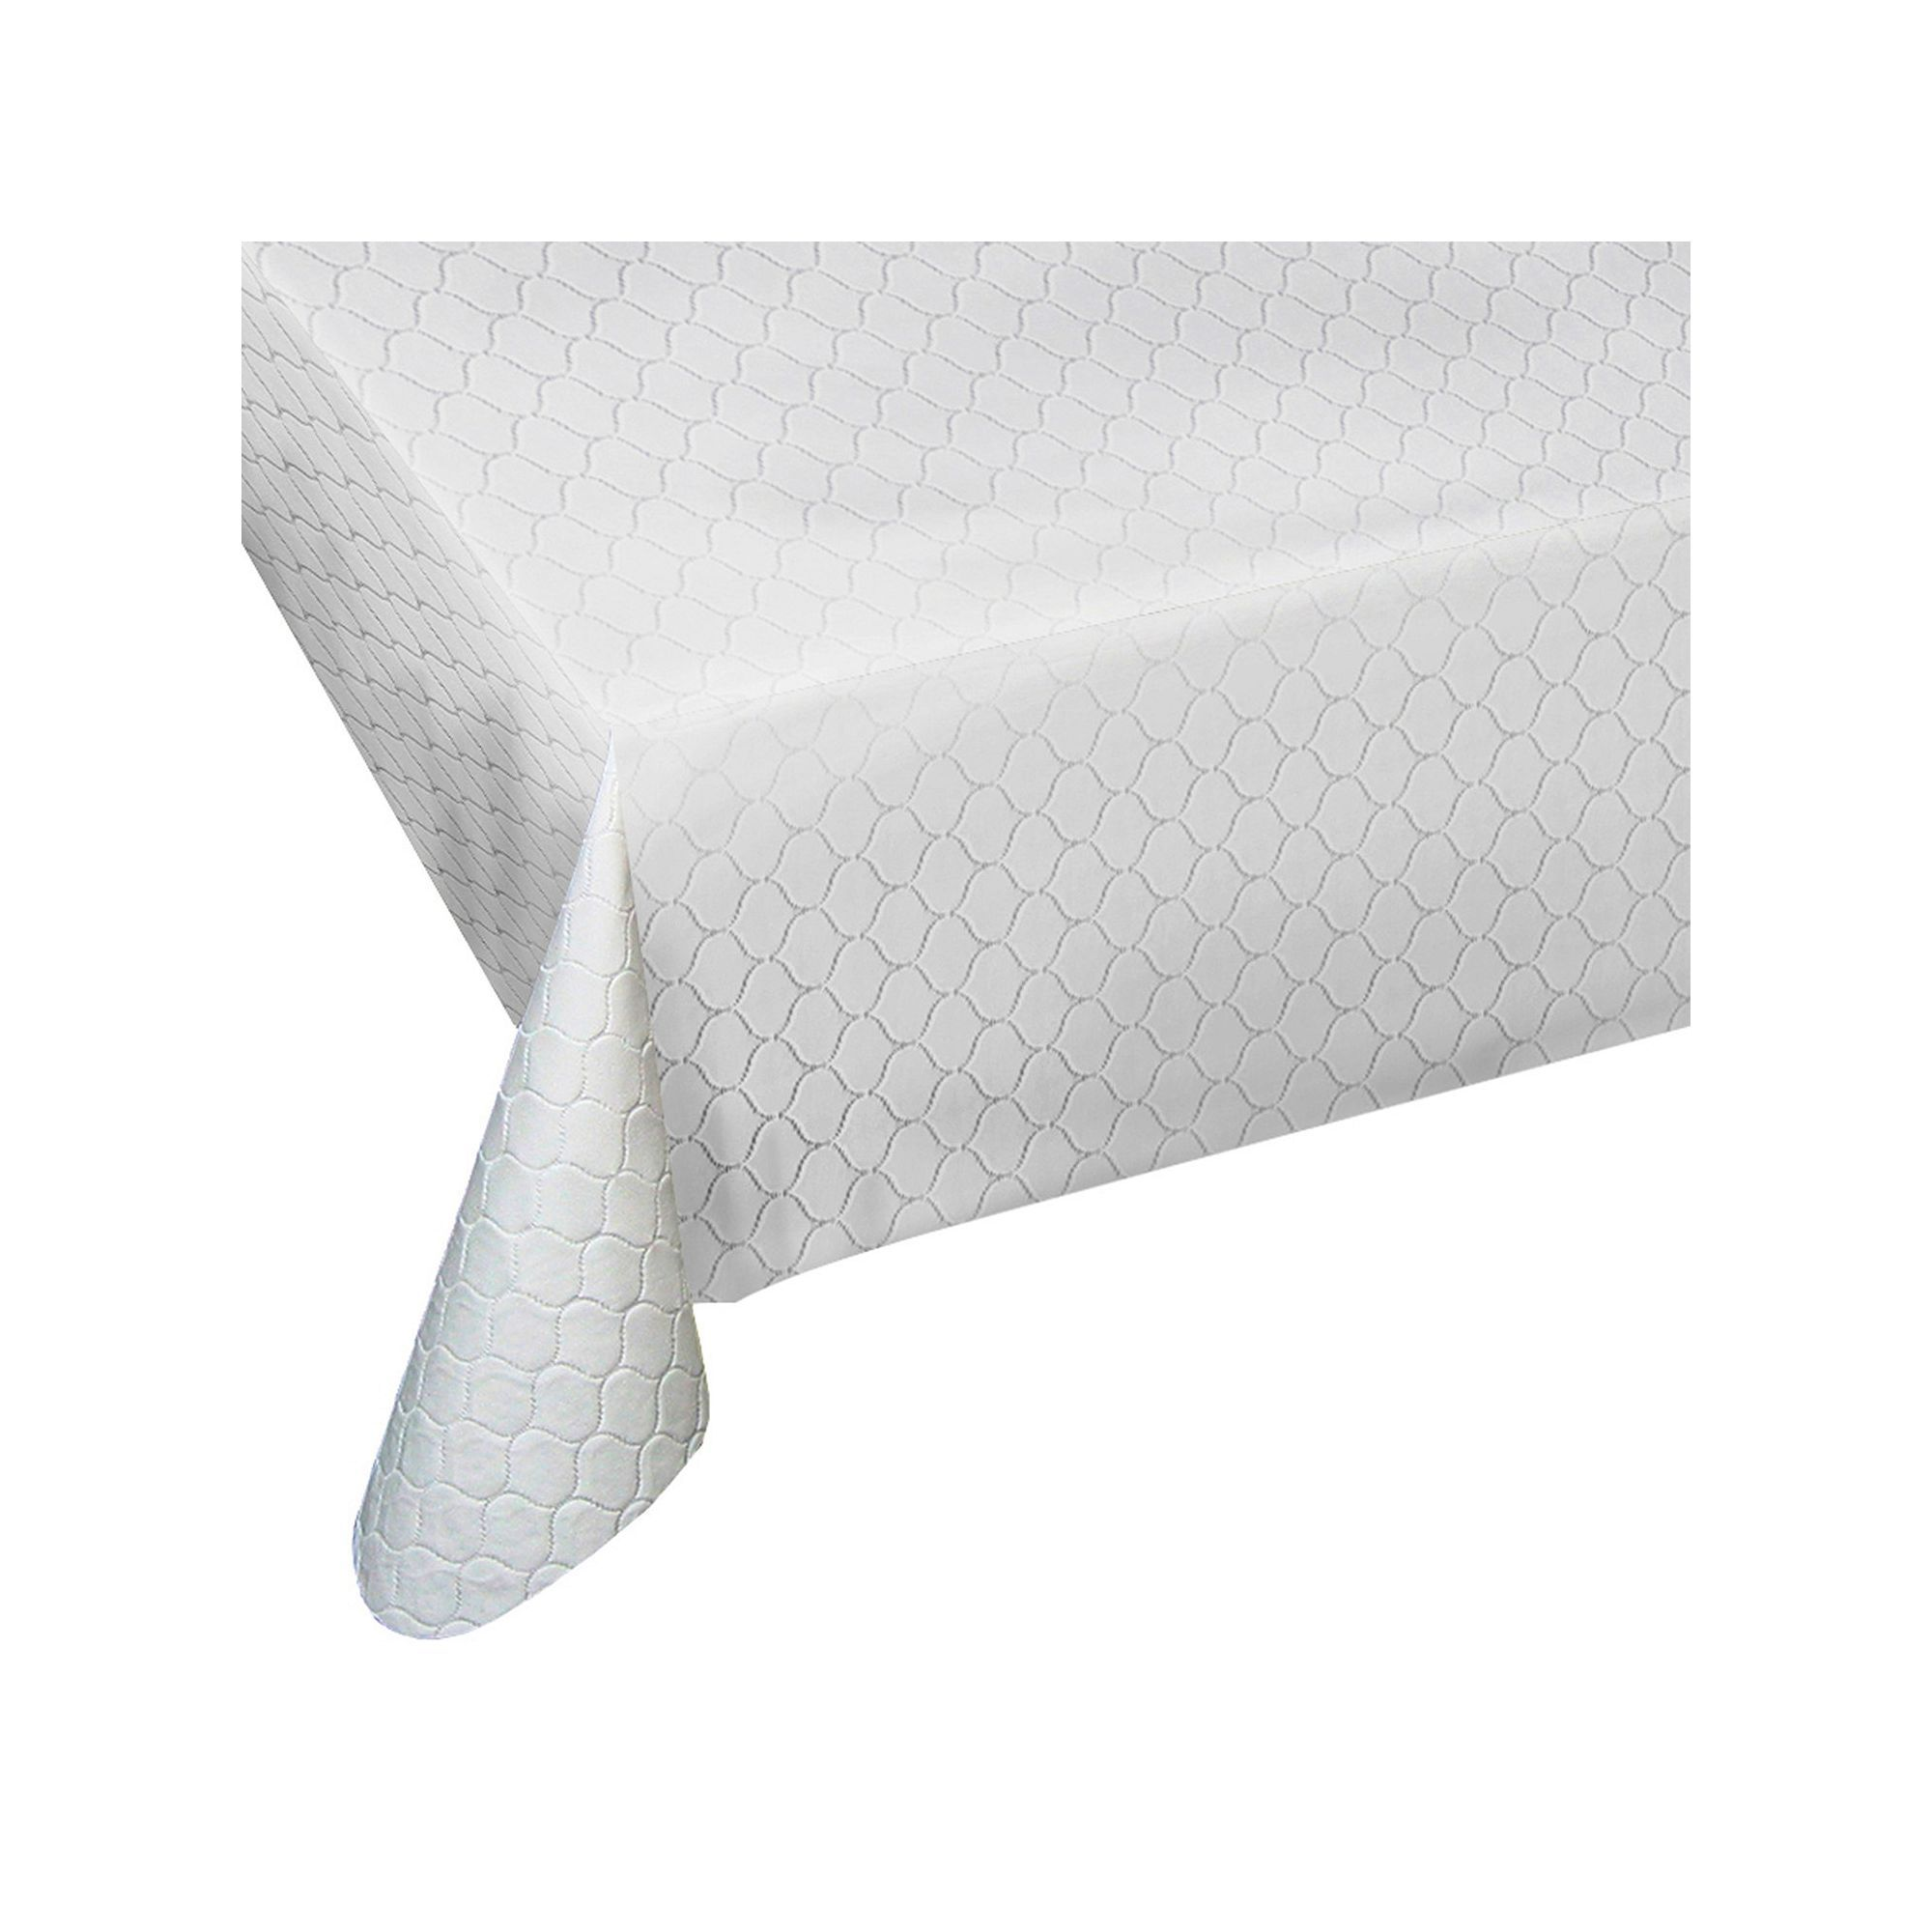 Hotel Quilted Tablecloth Pad, Multicolor | Products : quilted tablecloth table linens - Adamdwight.com